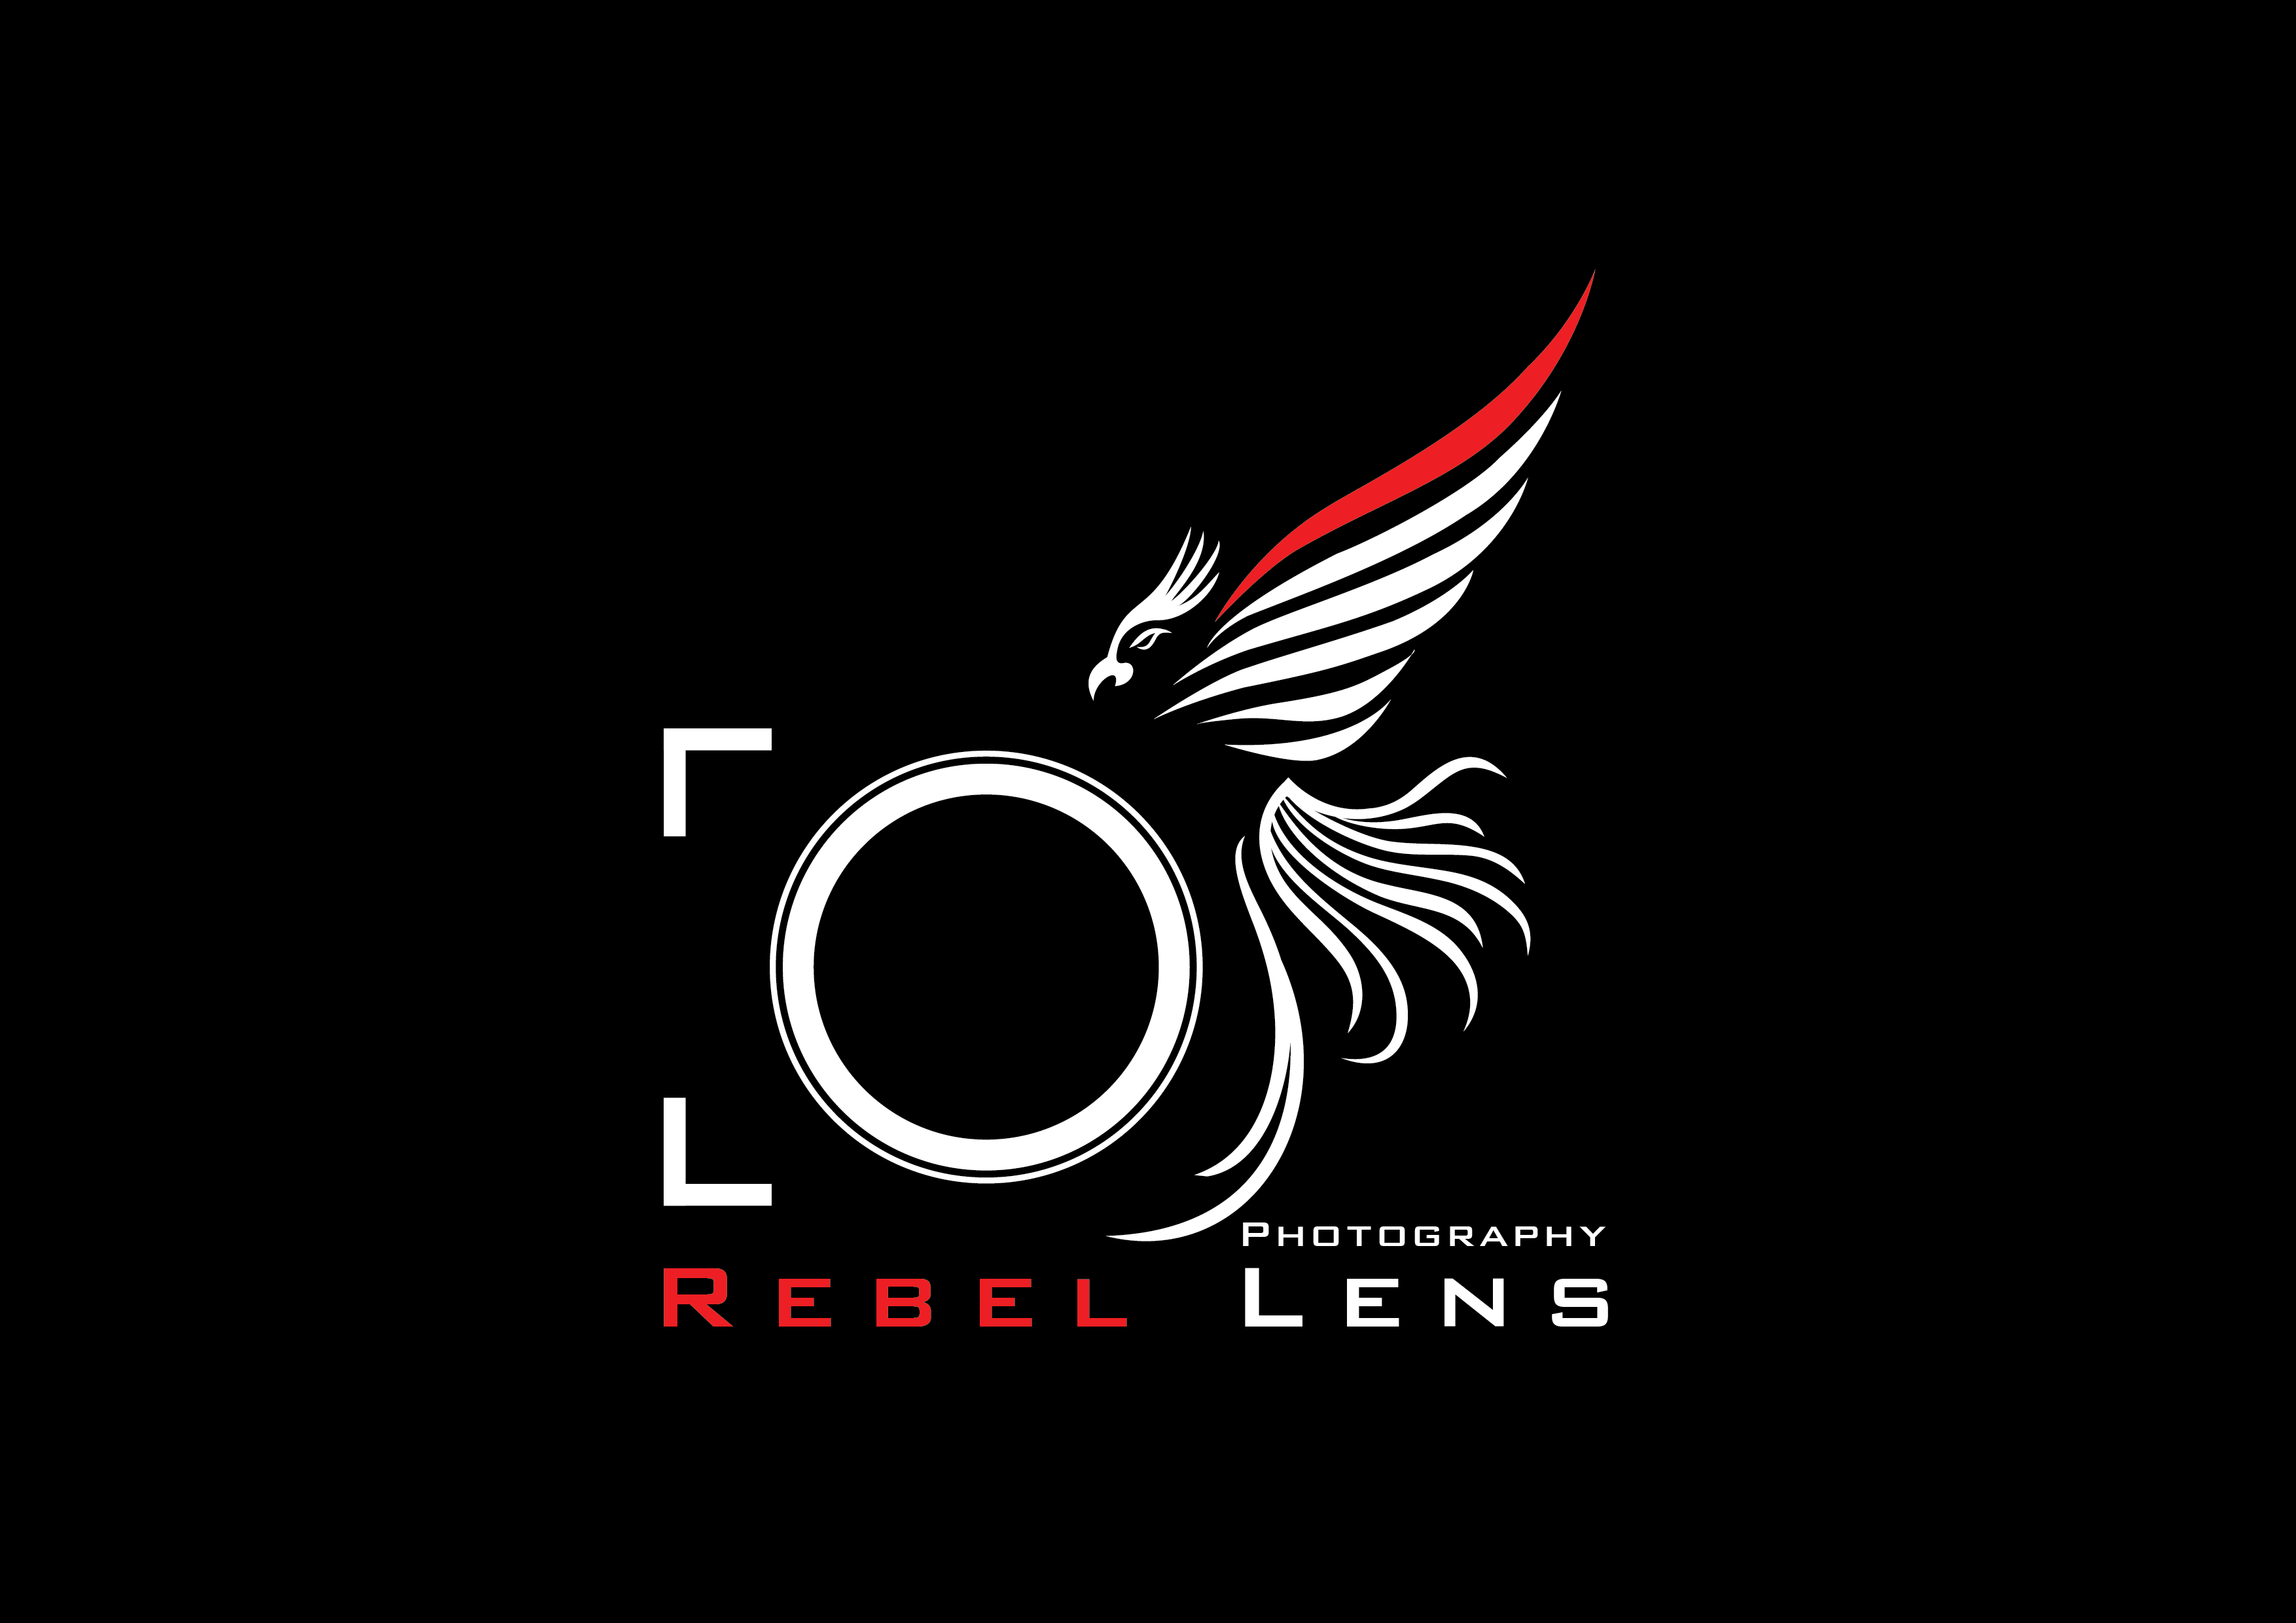 Rebel lens photography logo icon and brand identity design rebel lens photography logo icon and brand identity design bengin ahmad creative director photographer media consultant graphic designer buycottarizona